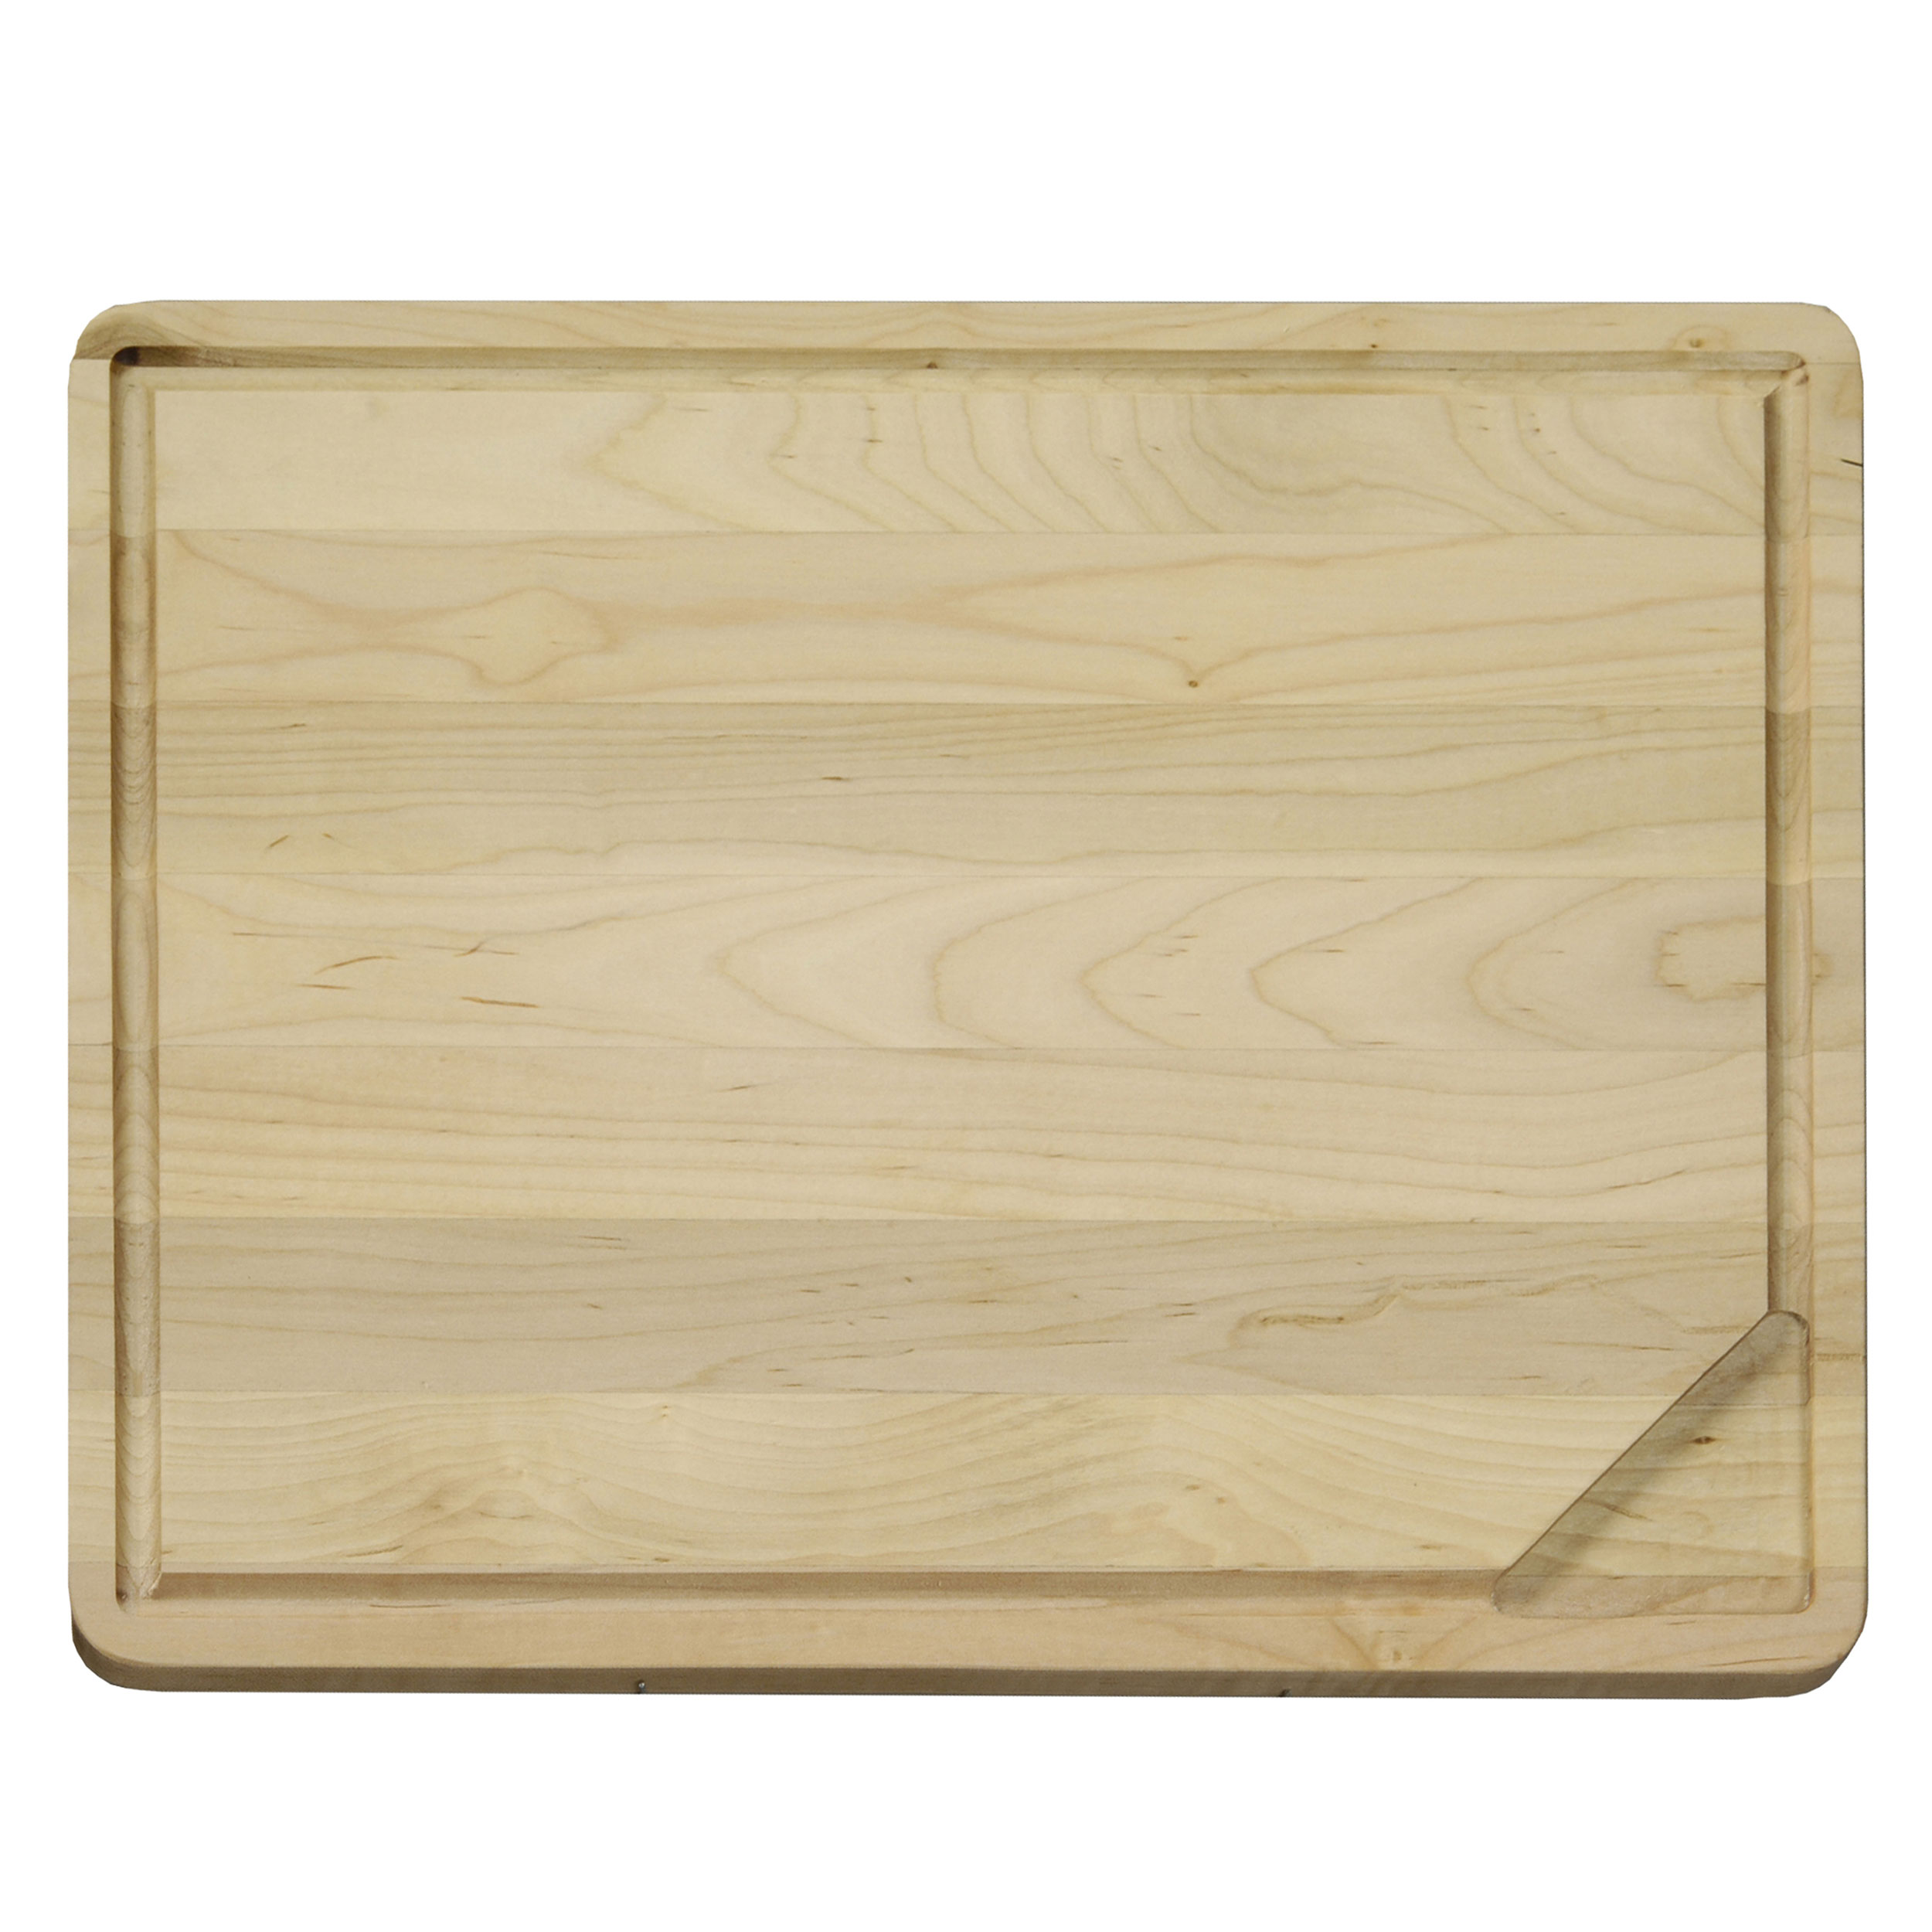 Large 18 X 14 inch Reversible Hardwood Cutting Board with Gravy Groove & Well